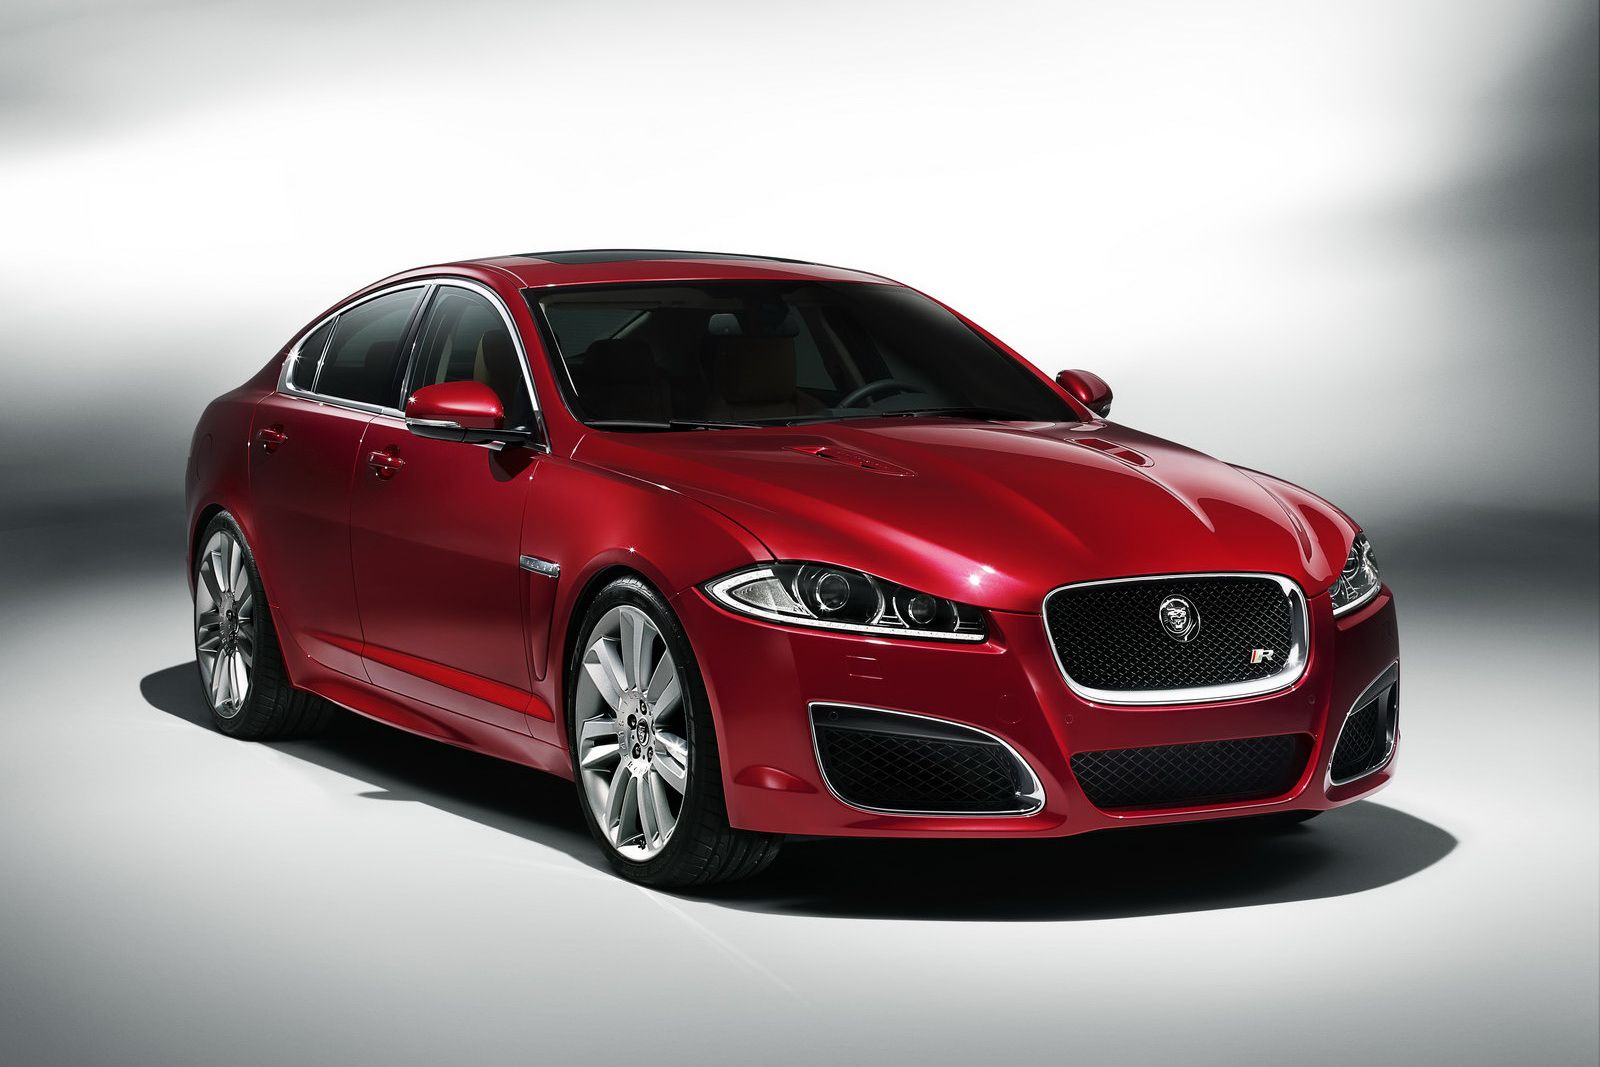 Jaguar Xf Jaguar Xf. Details about Jaguar Xf has been published by